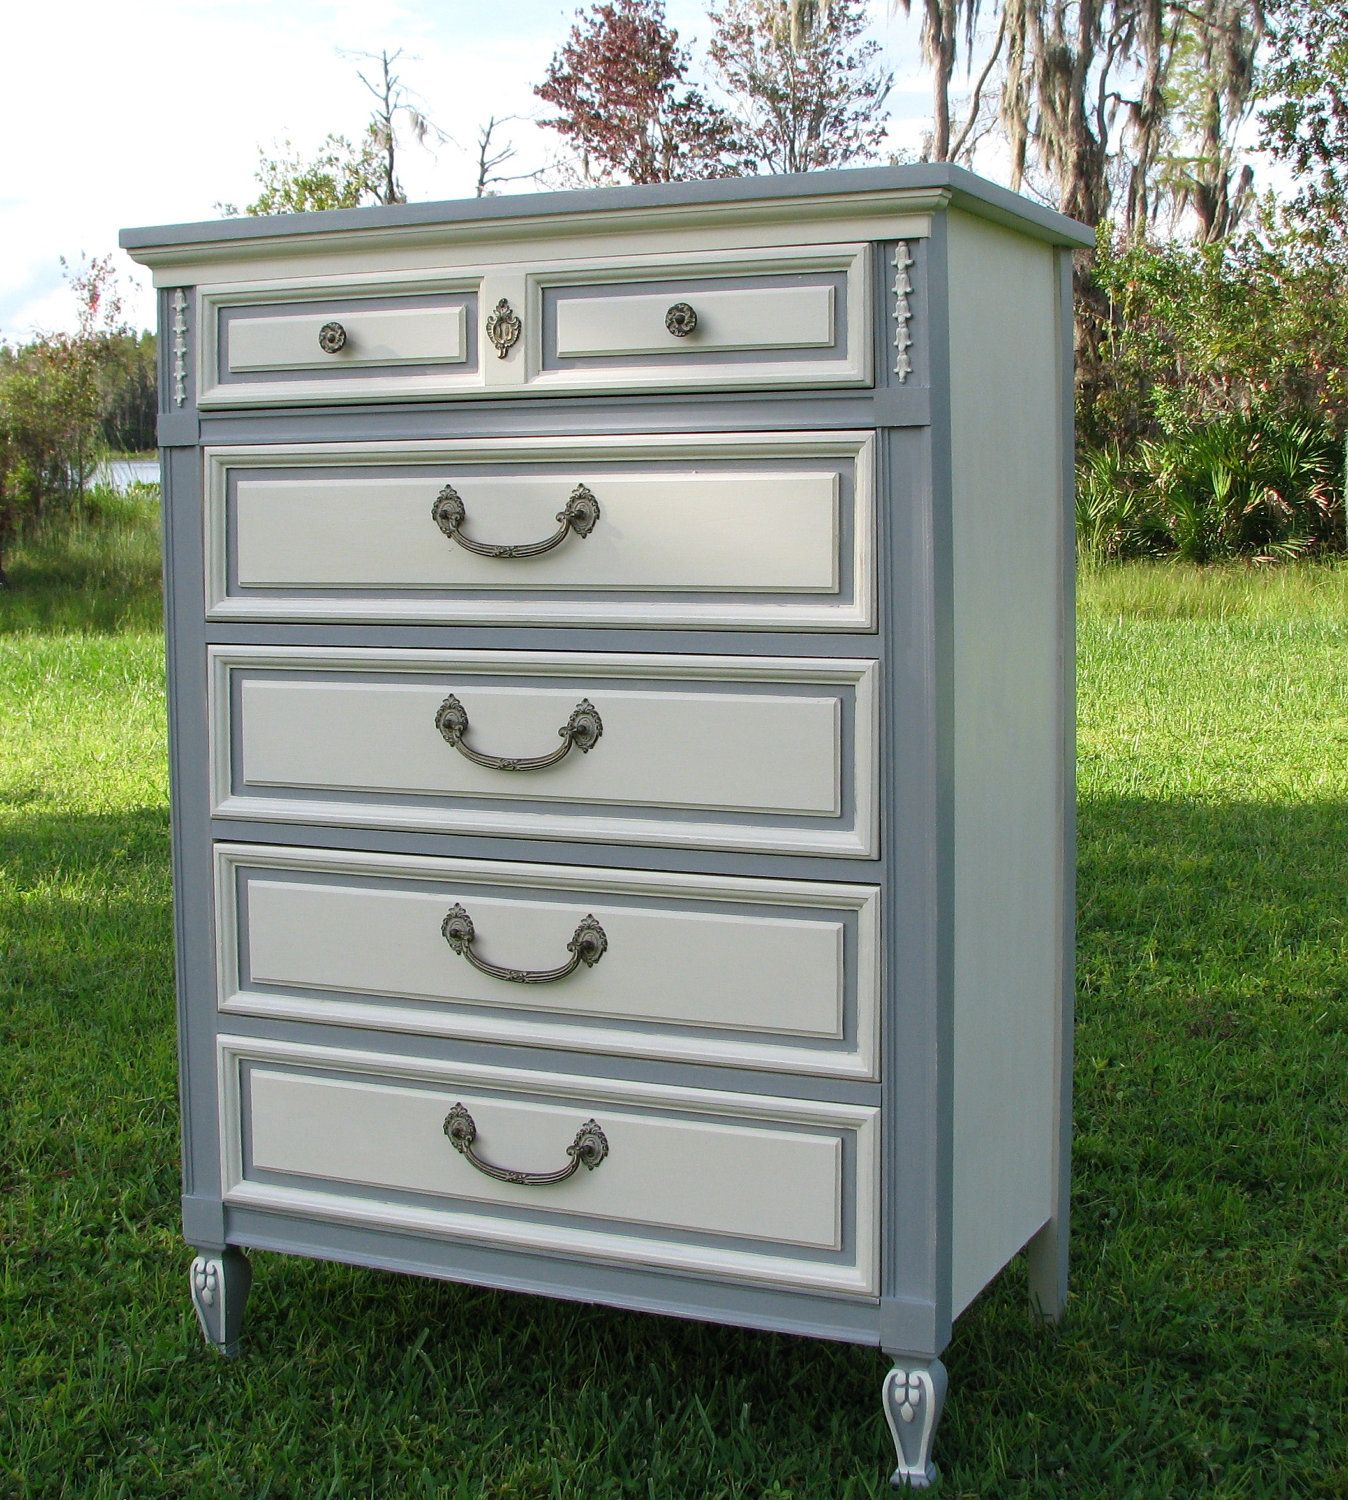 Shabby Chic Dresser, Painted Furniture, Gray And White, French Provincial  Style   Use Drawer Design On Foyer Table Makeover.